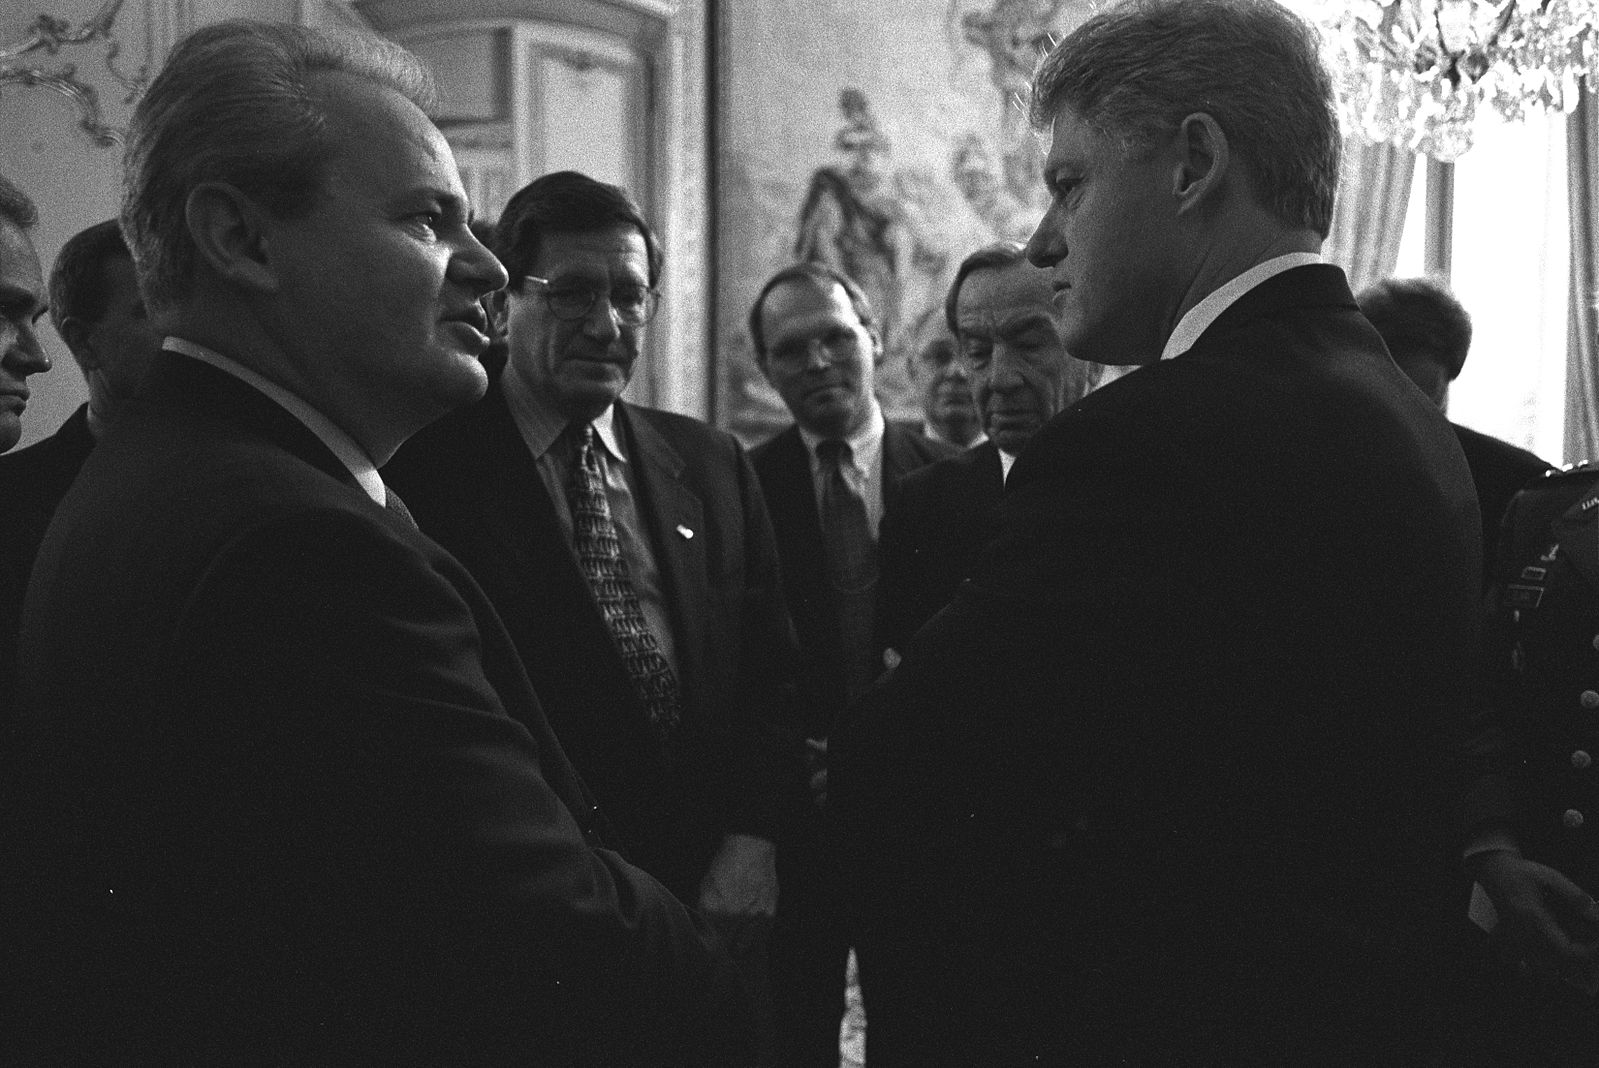 President_Clinton_talking_with_Serbian_President_Slobodan_Milosevic.jpg